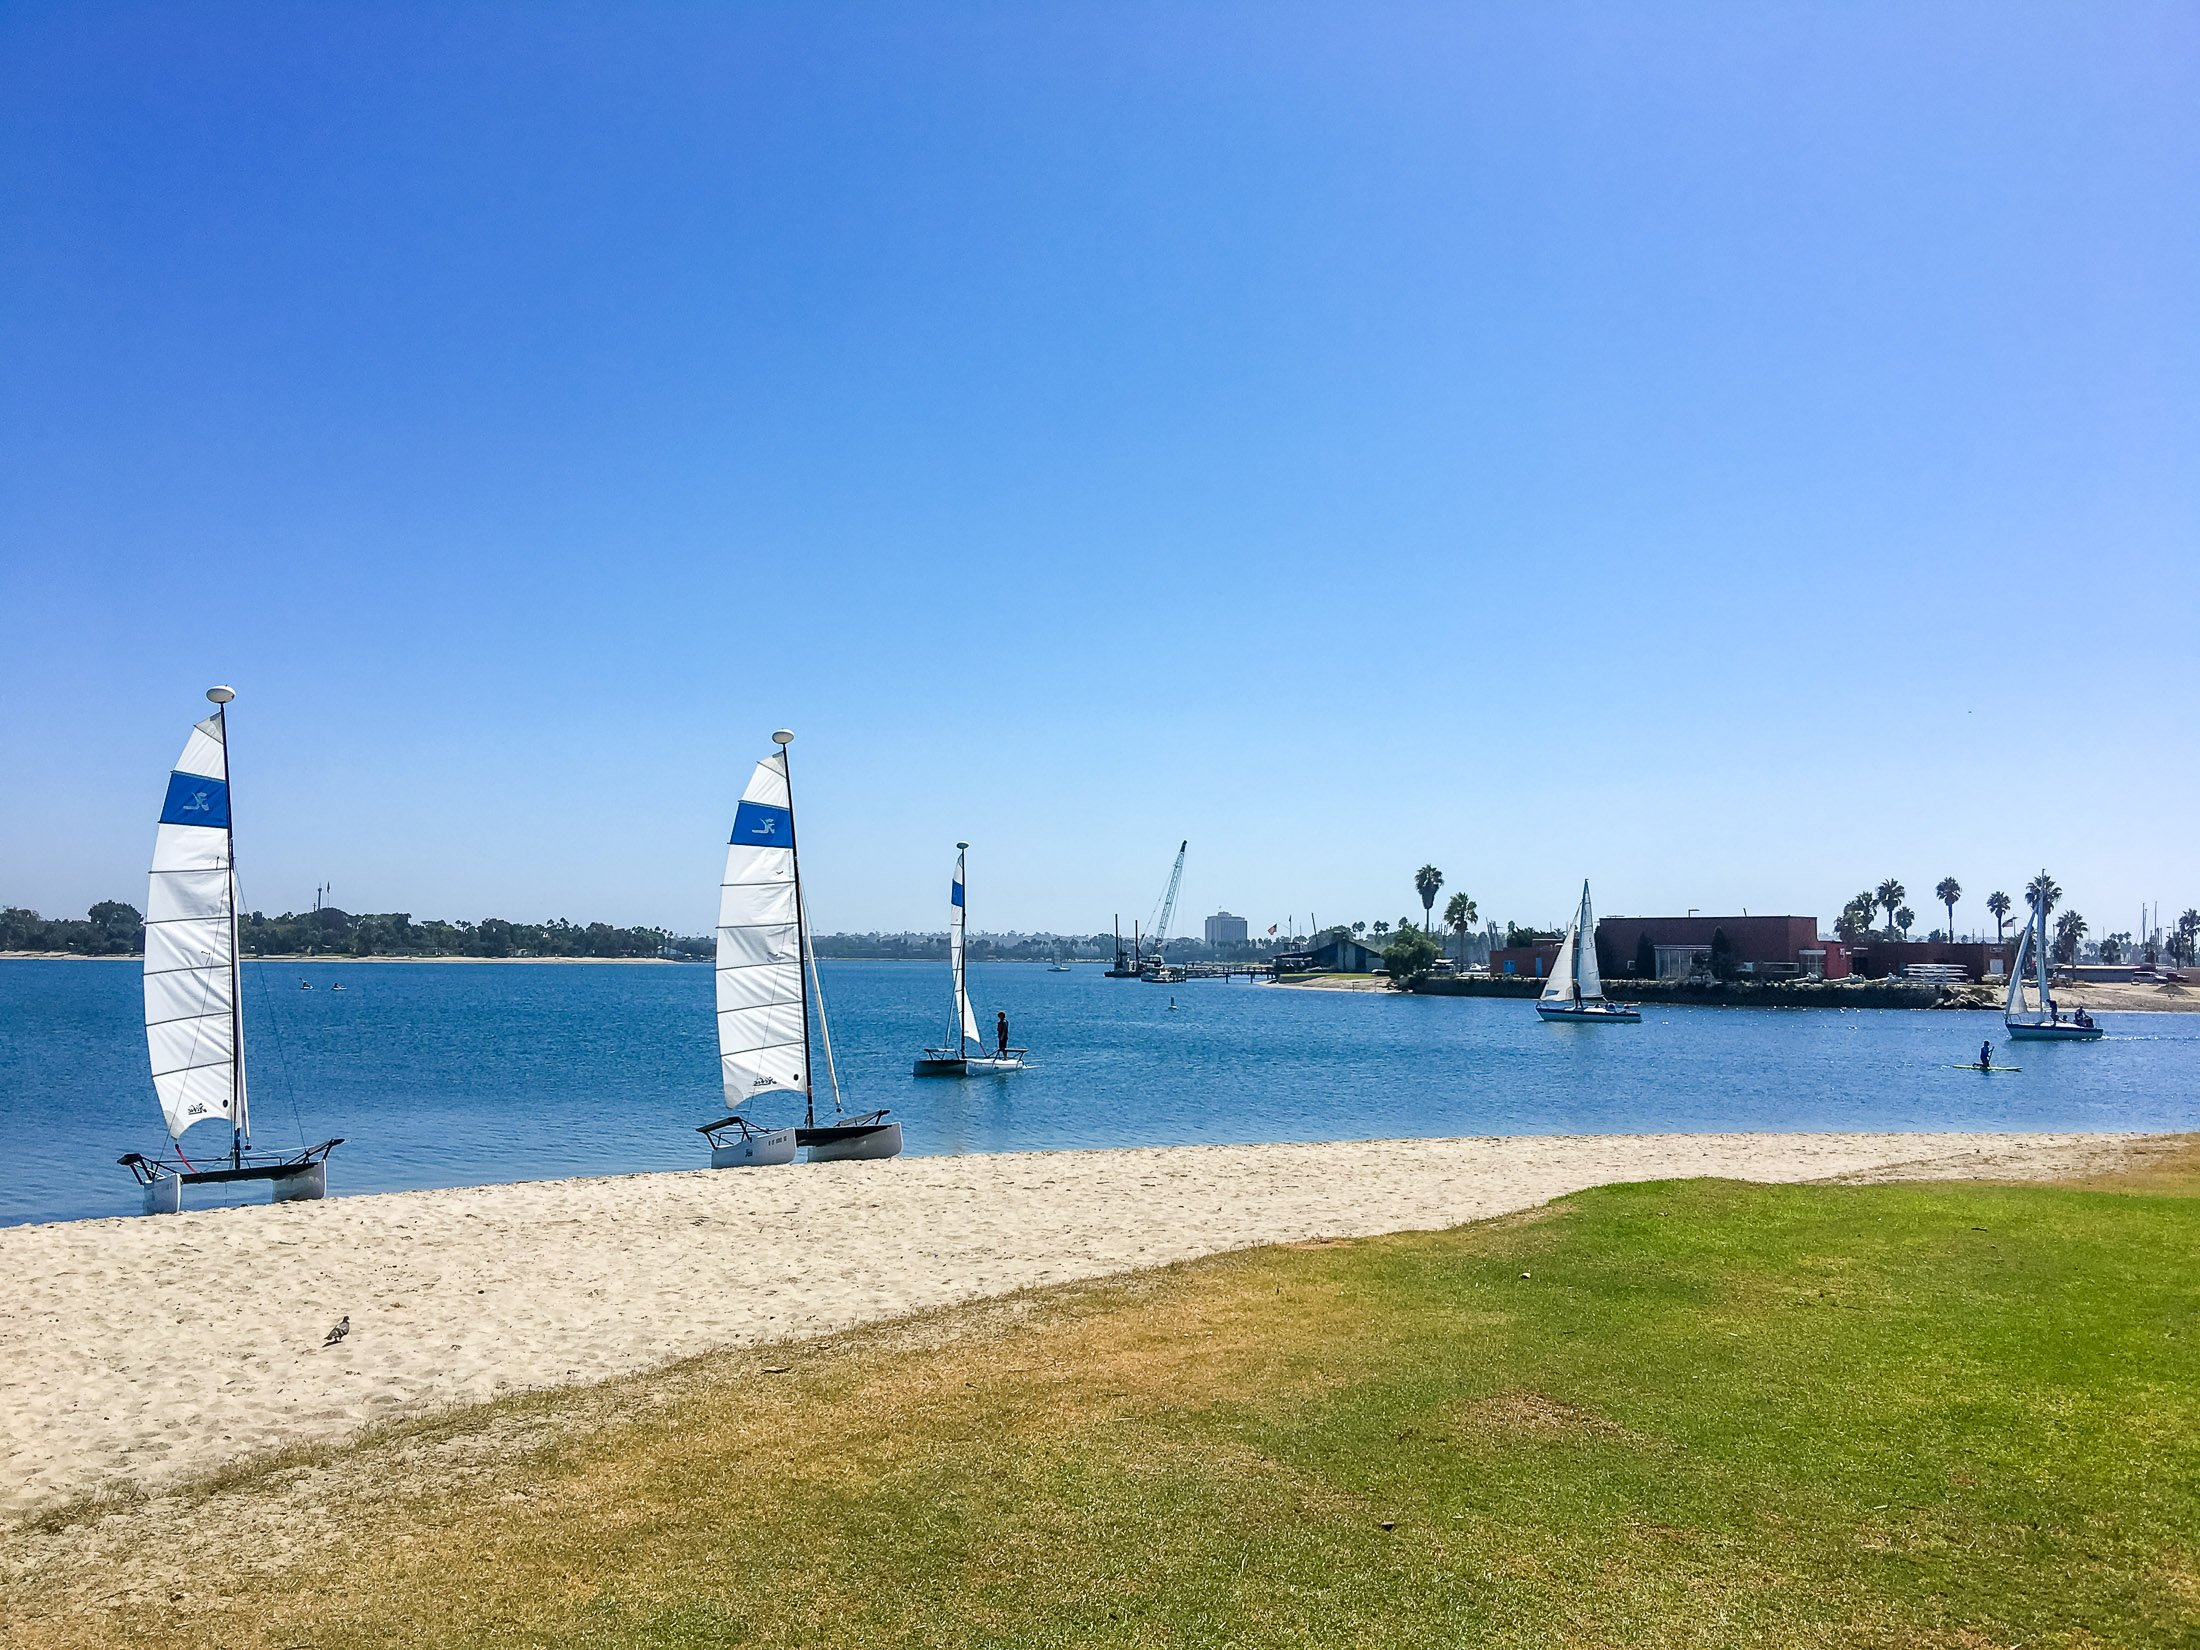 Small sail boats in the sand bordering Mission Bay in September